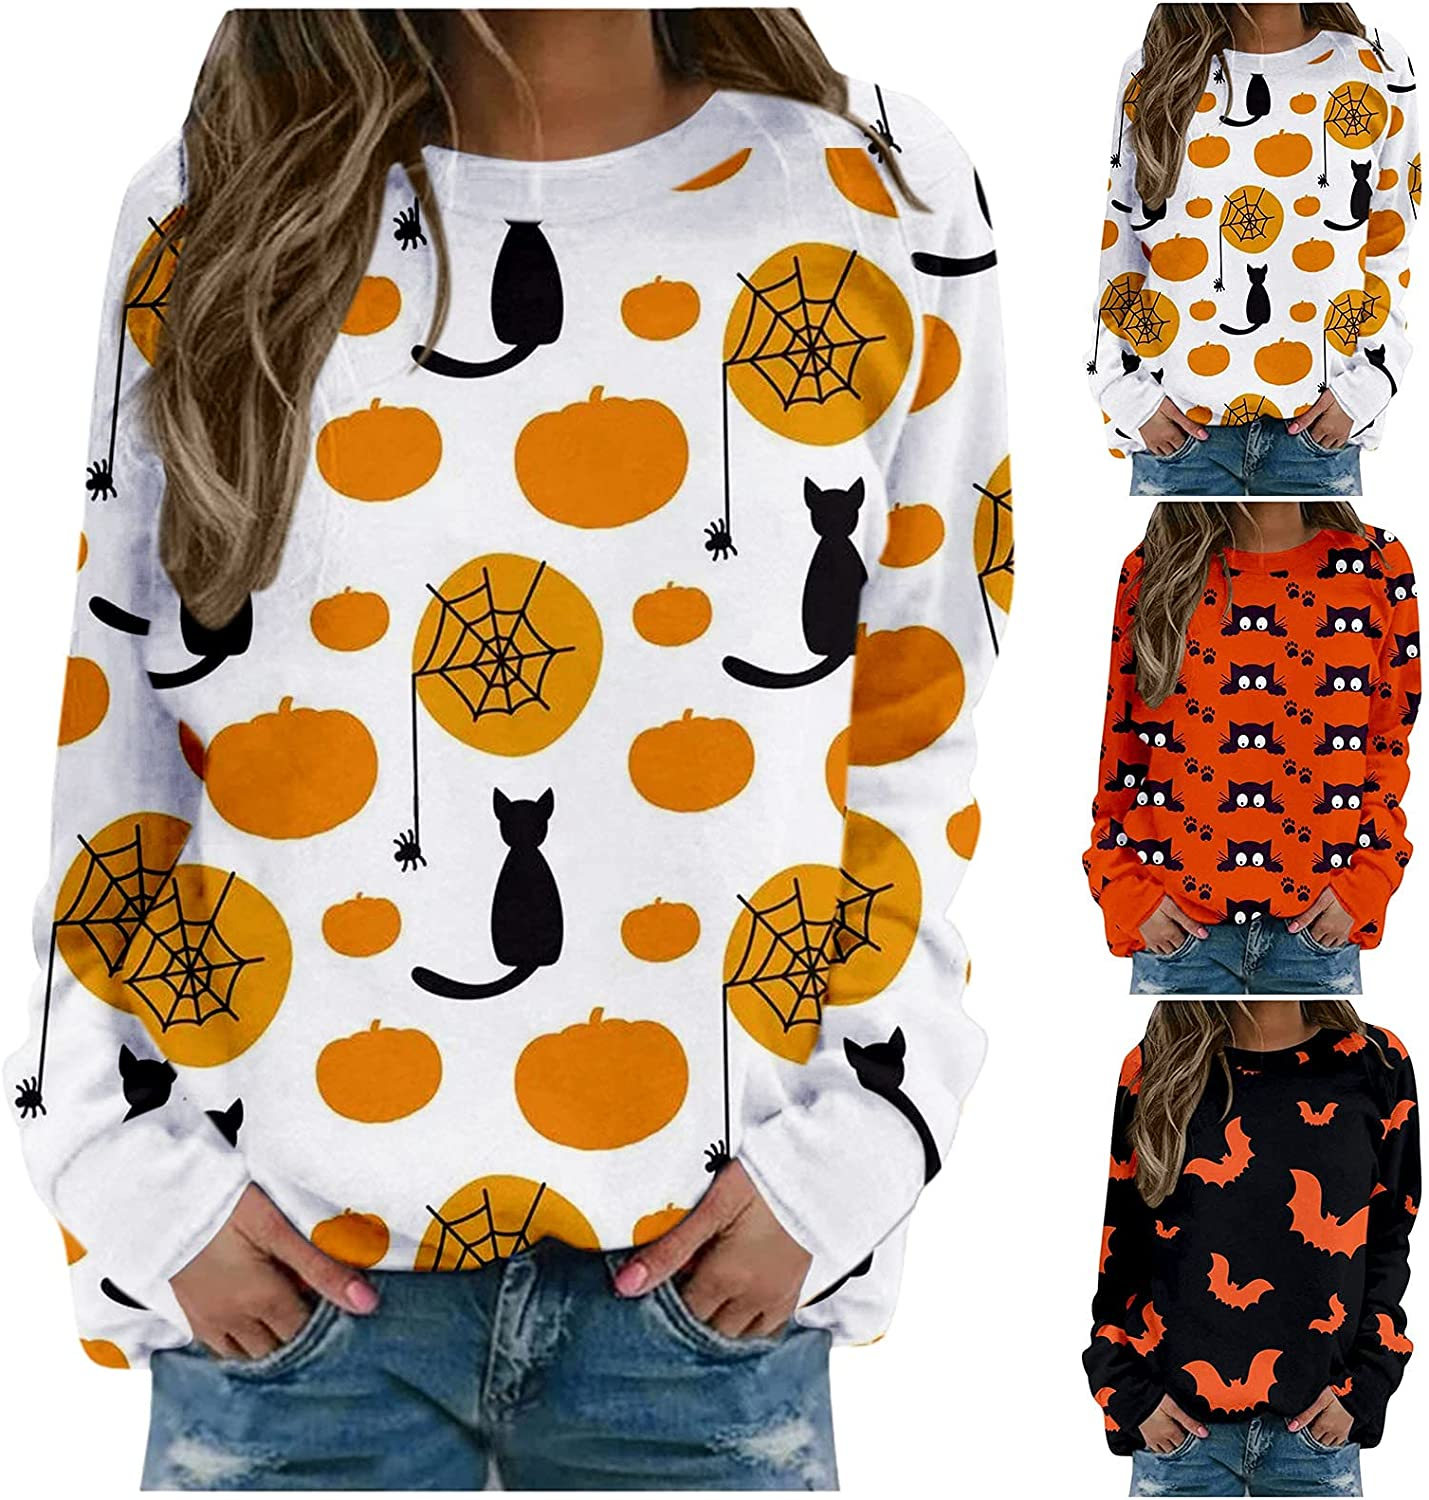 nunonette Sweatshirts for Women Crewneck Pullover Halloween Pattern Long Sleeve Tops Blouse Casual Loose Style Sweater